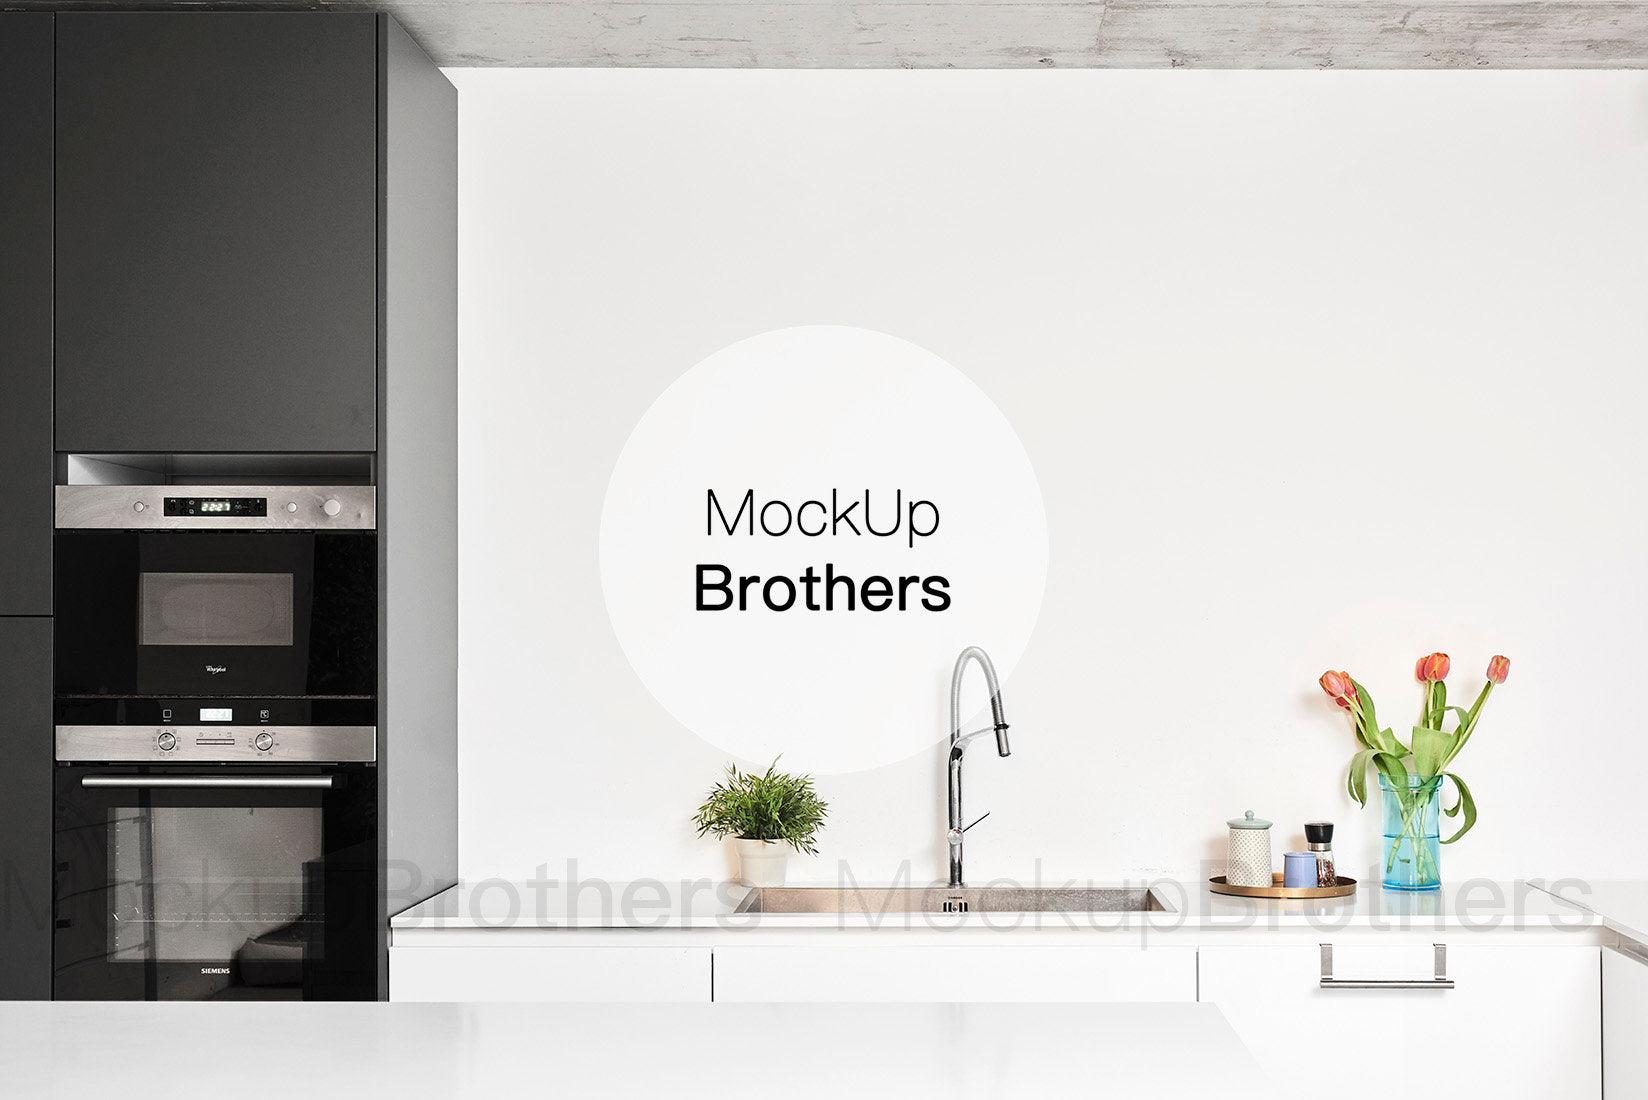 modern kitchen wall mockup by MOckup Brothers